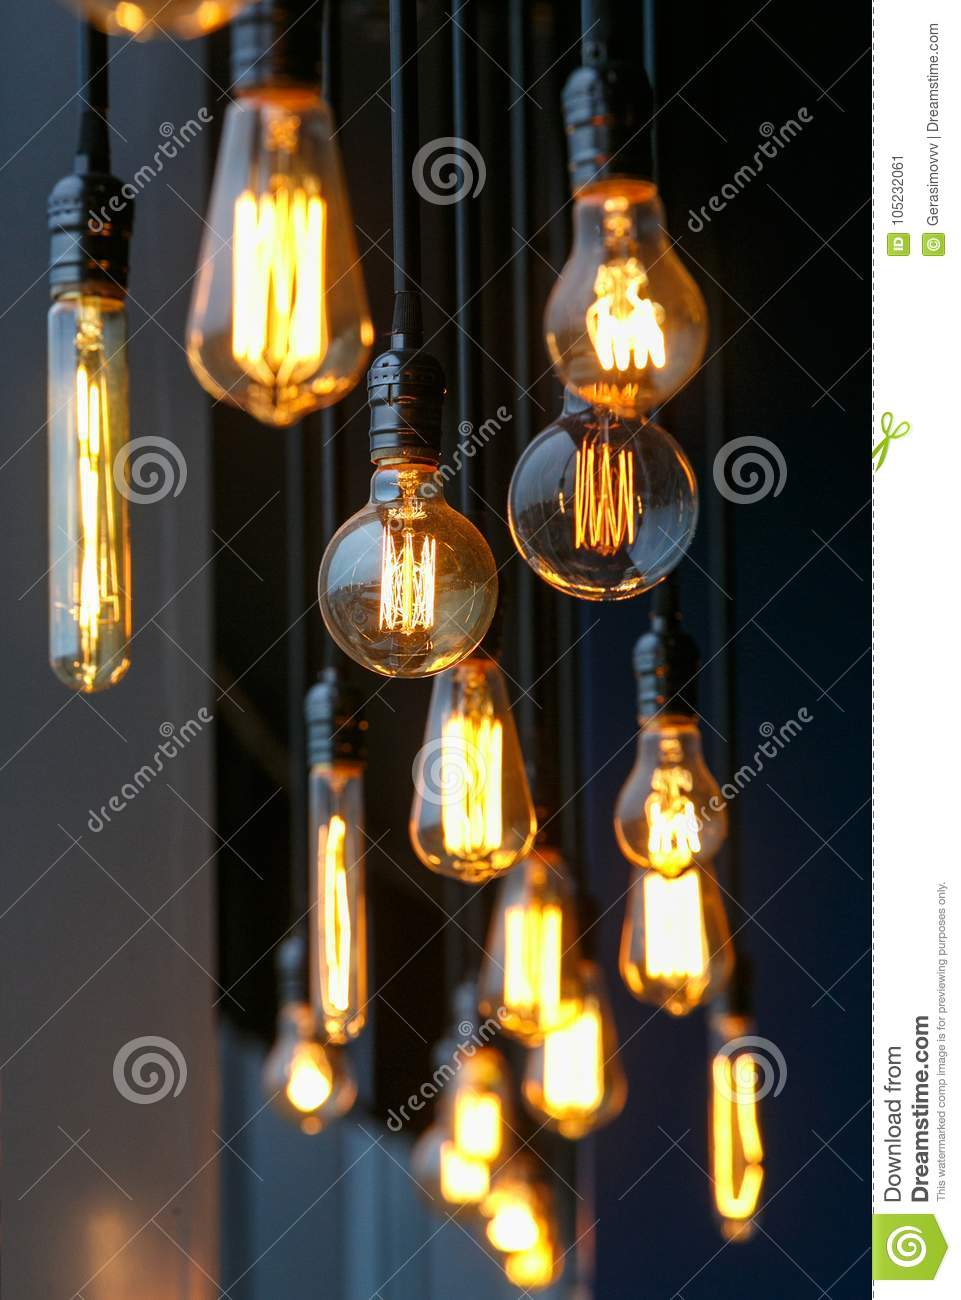 Different Vintage Tungsten Filament Lamps Hanging From The Ceiling Wiring A Light Fixture Black Wire Multiple Of Size And Style On Wires As An Interior Design Concept